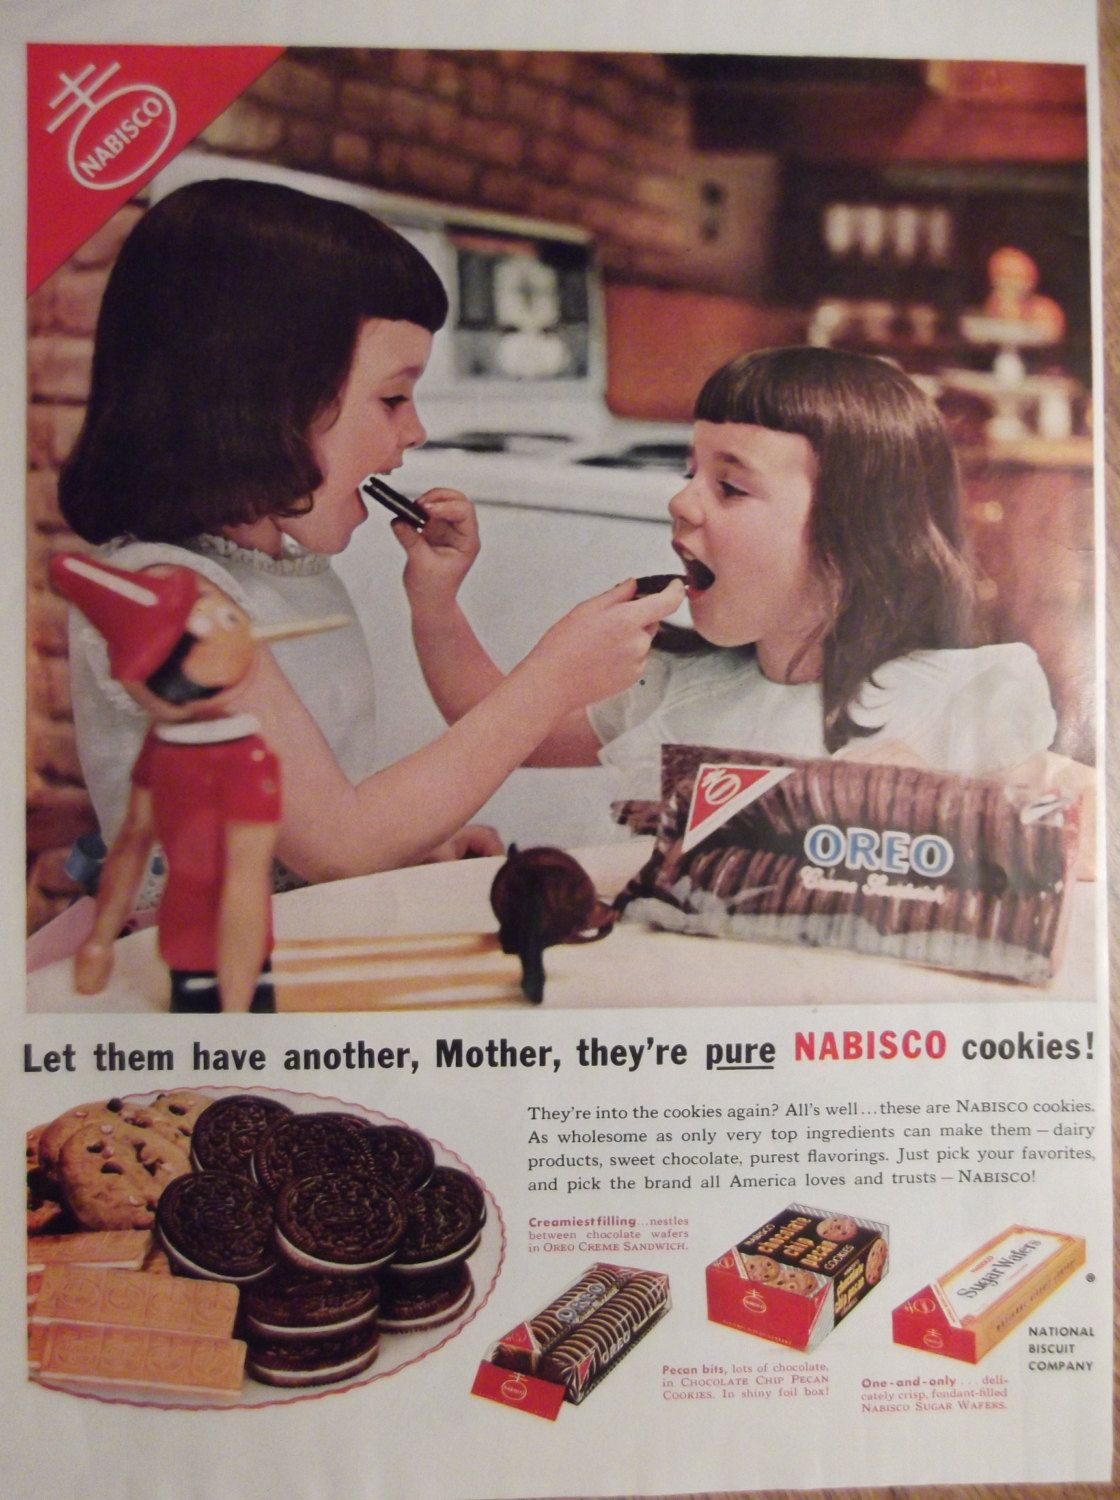 Characters & Dolls Oreo Doll Nabisco Cookie Advertising Promo Premium Toy In Box Vintage 80's Traveling Collectibles